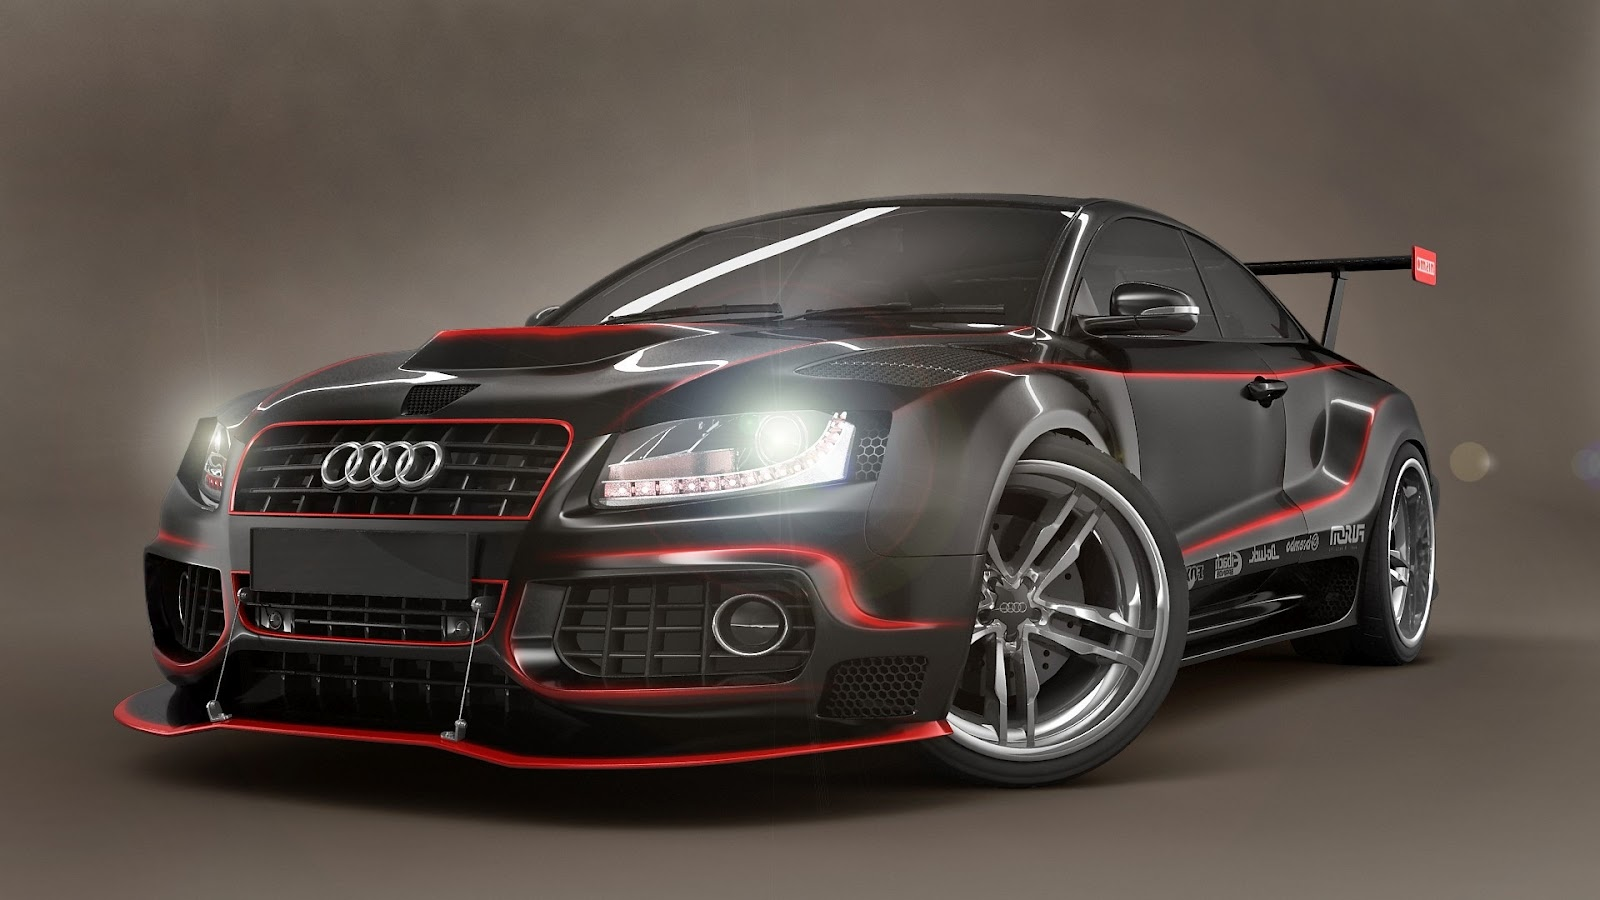 Audi S5 Modified Body Kit Red Lines HD Wallpaper ~ HD Car Wallpapers